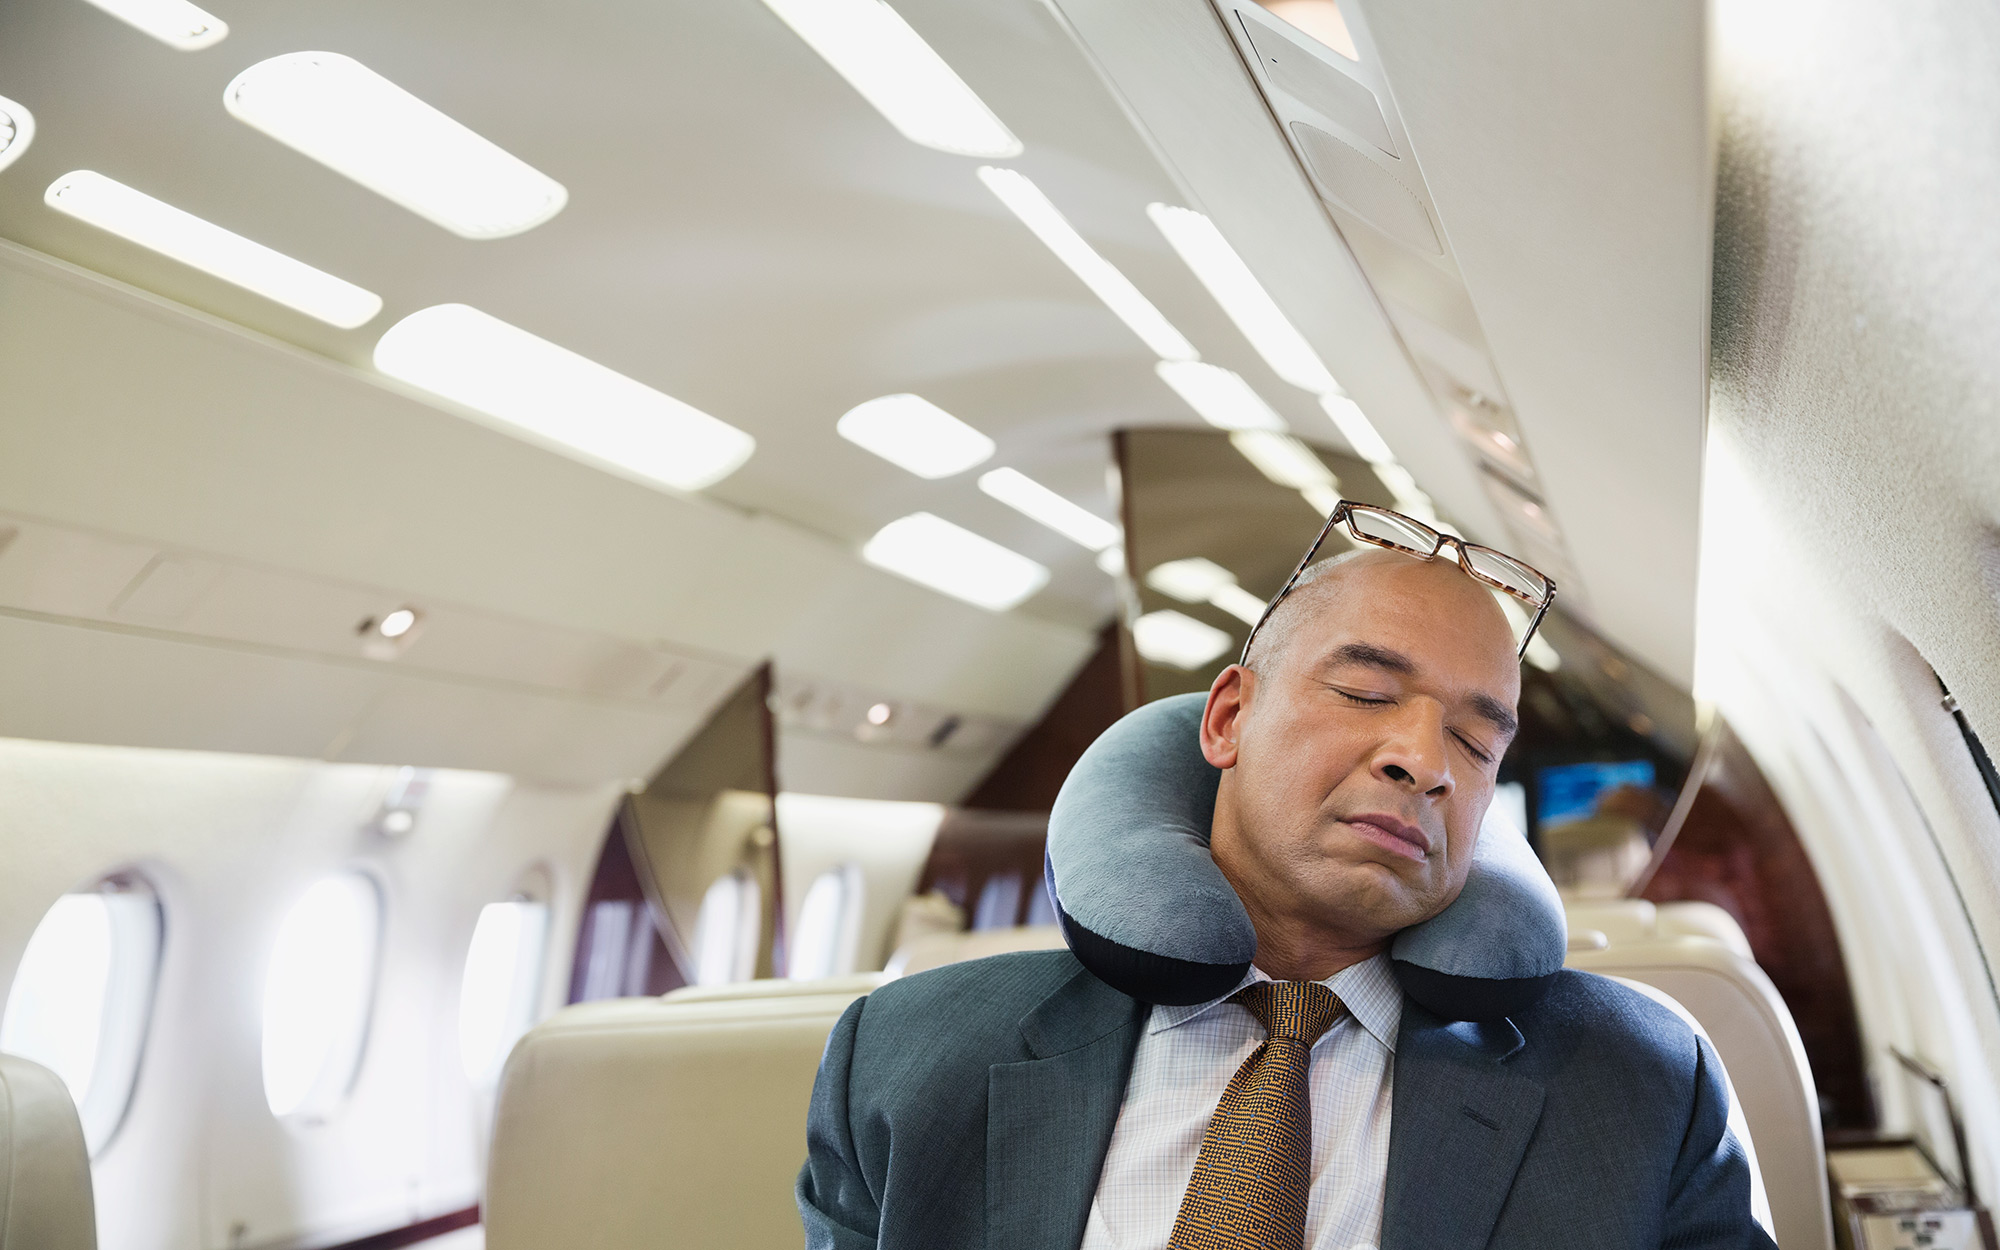 asleep-airplane-PRODUCTS0316.jpg